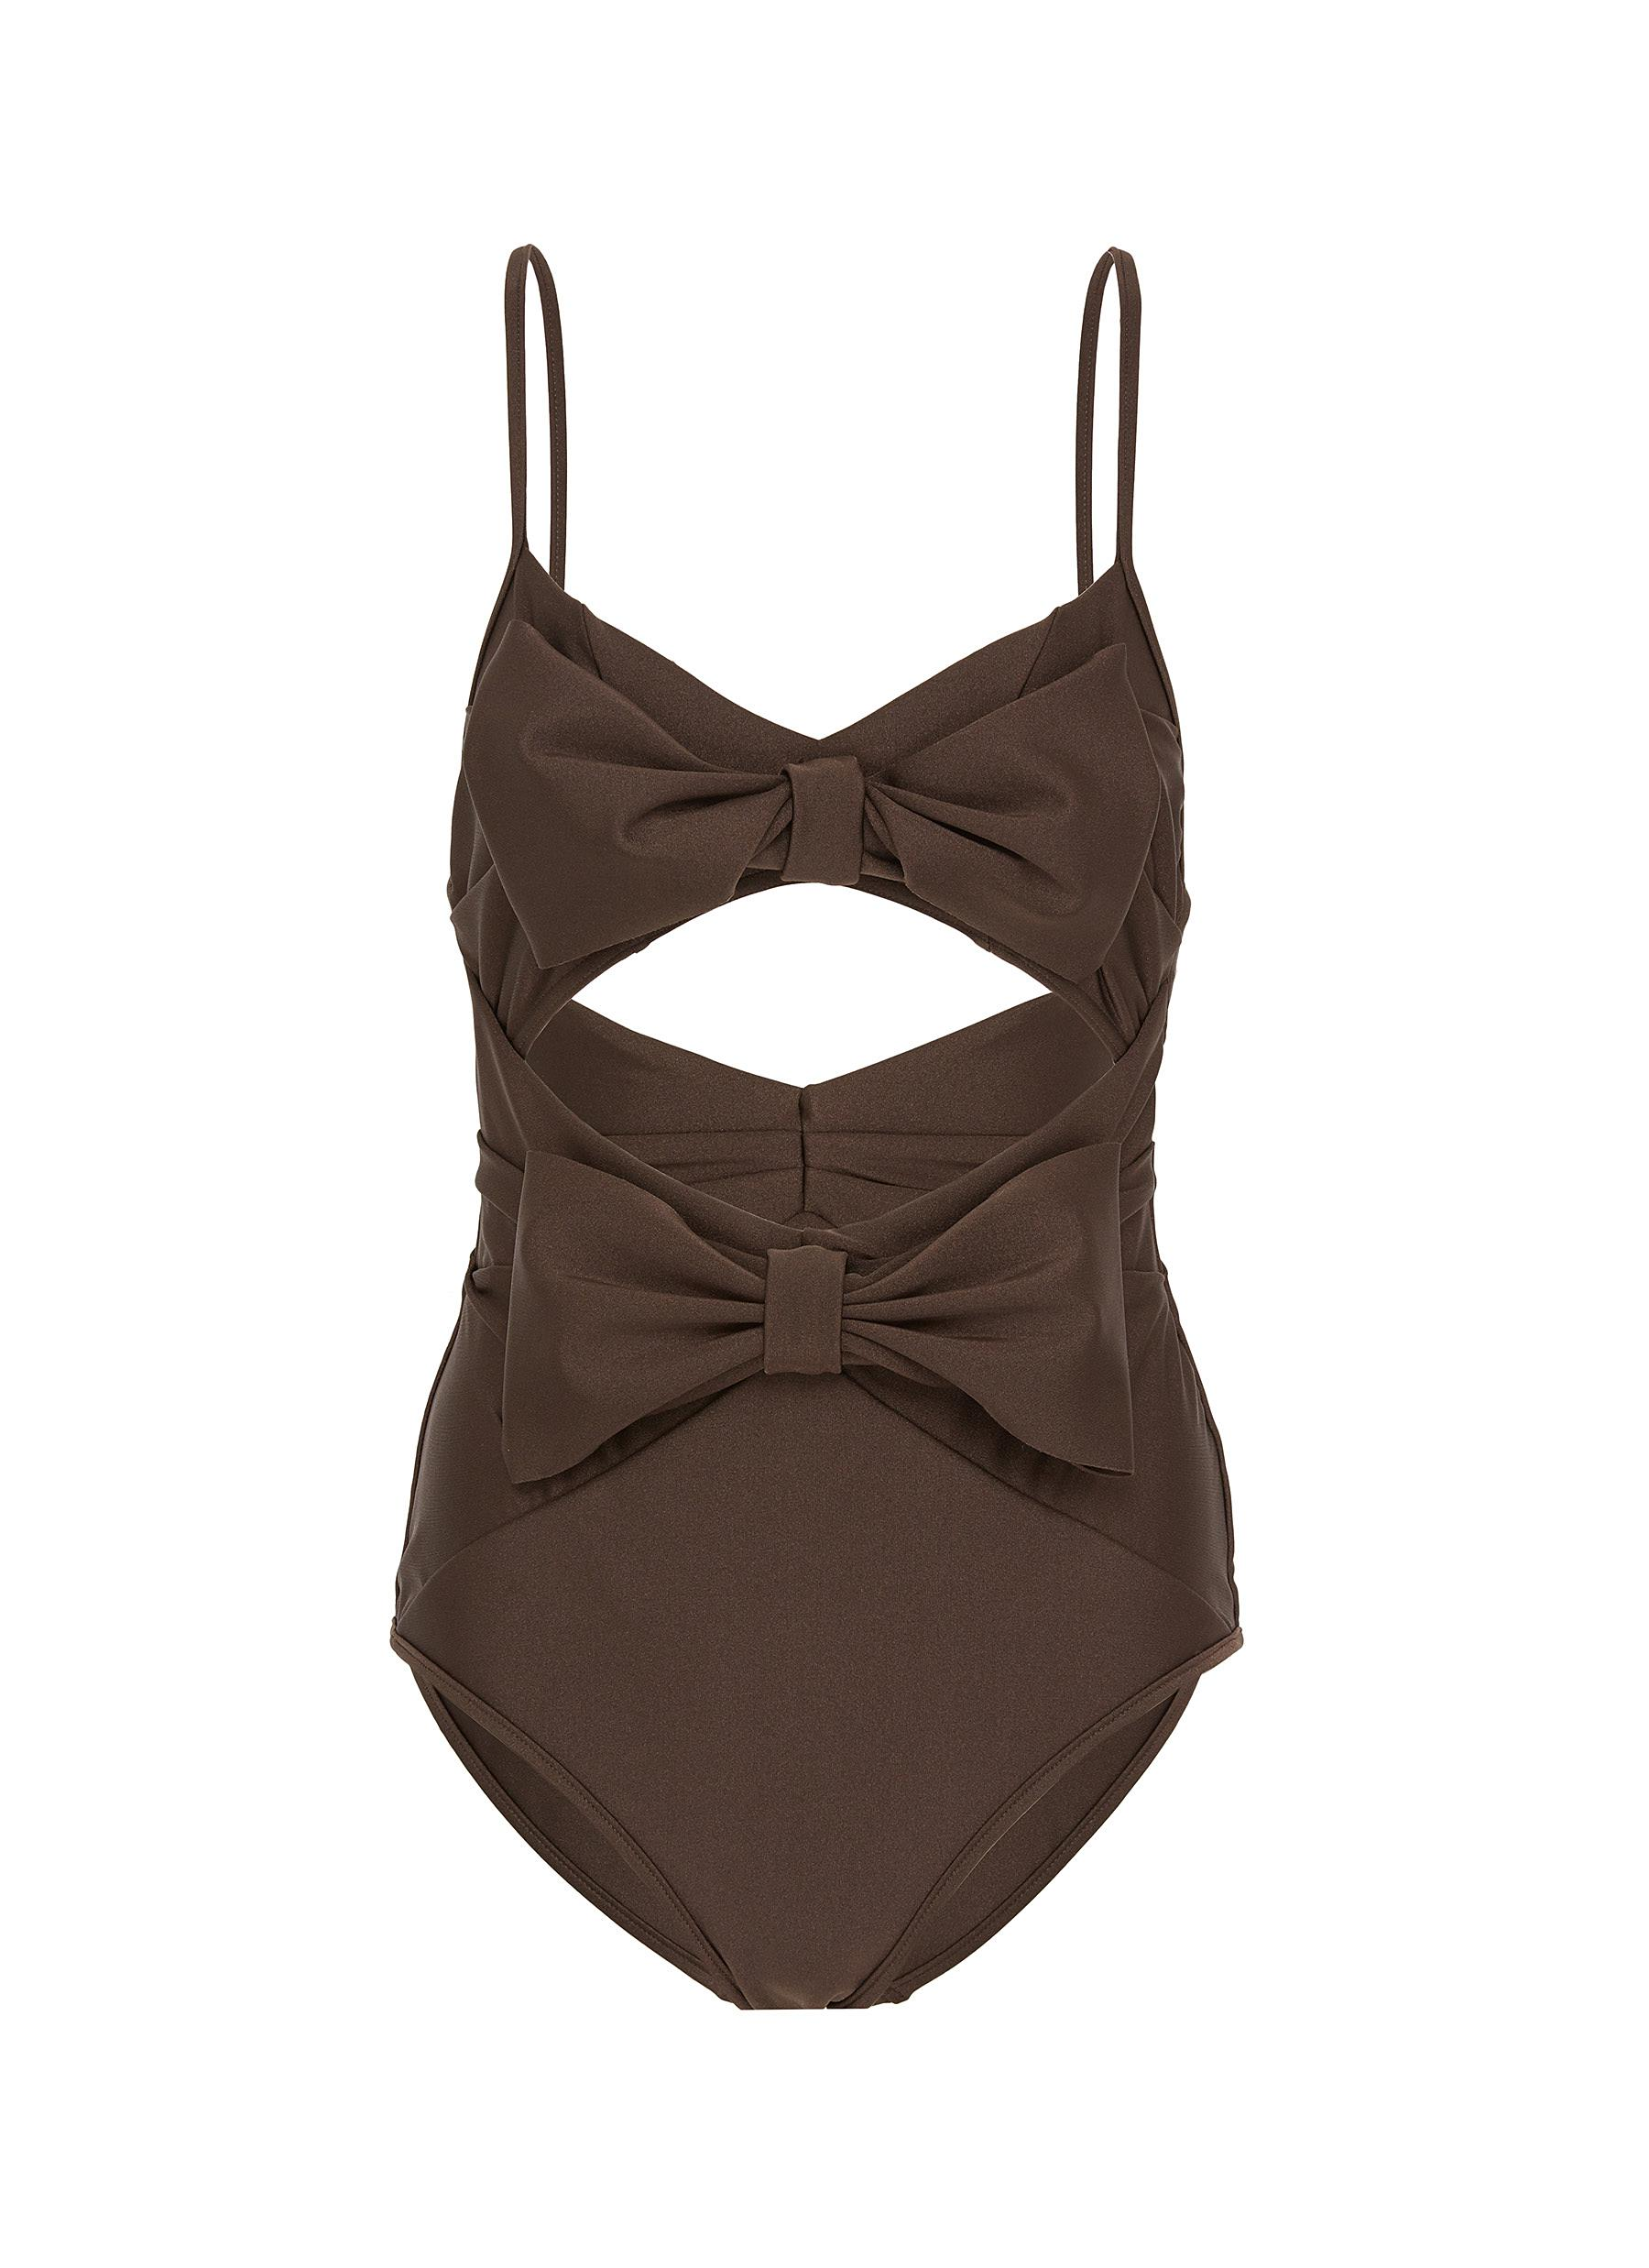 Corsage bow front cutout one-piece swimsuit by Zimmermann